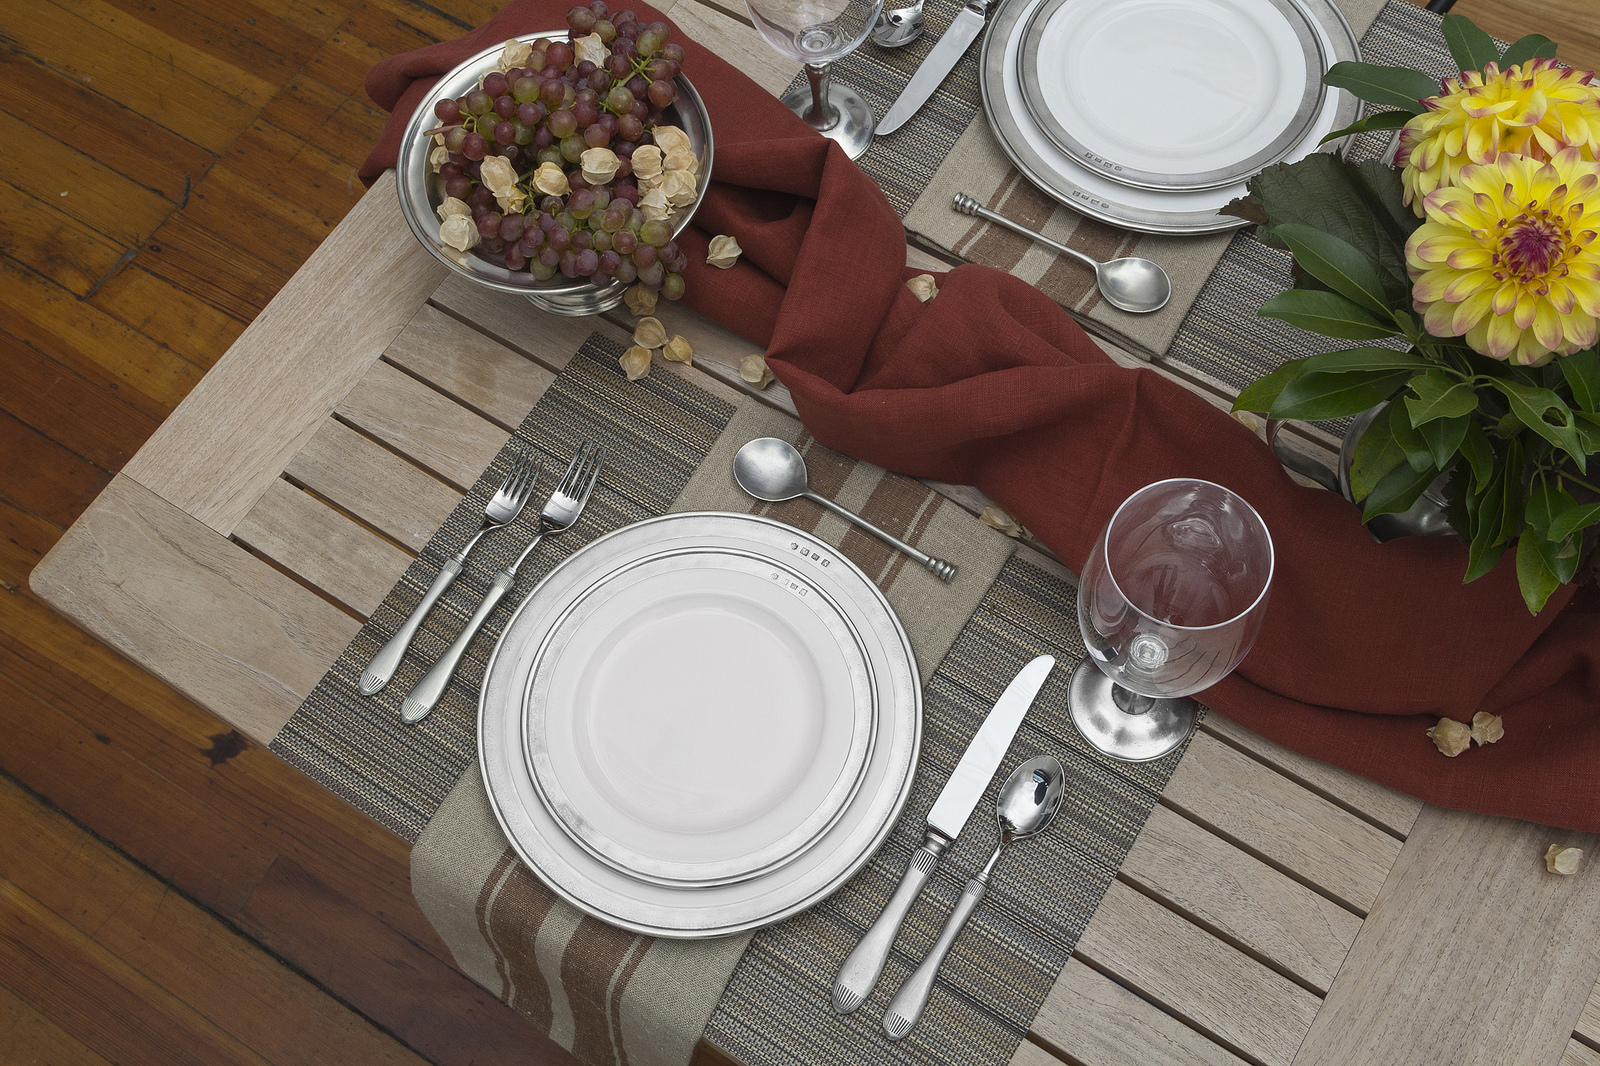 Libeco Home  Grainhall napkin ,  Chilewich multi stipe placemat  in Harvest,  Match Pewter   tableware